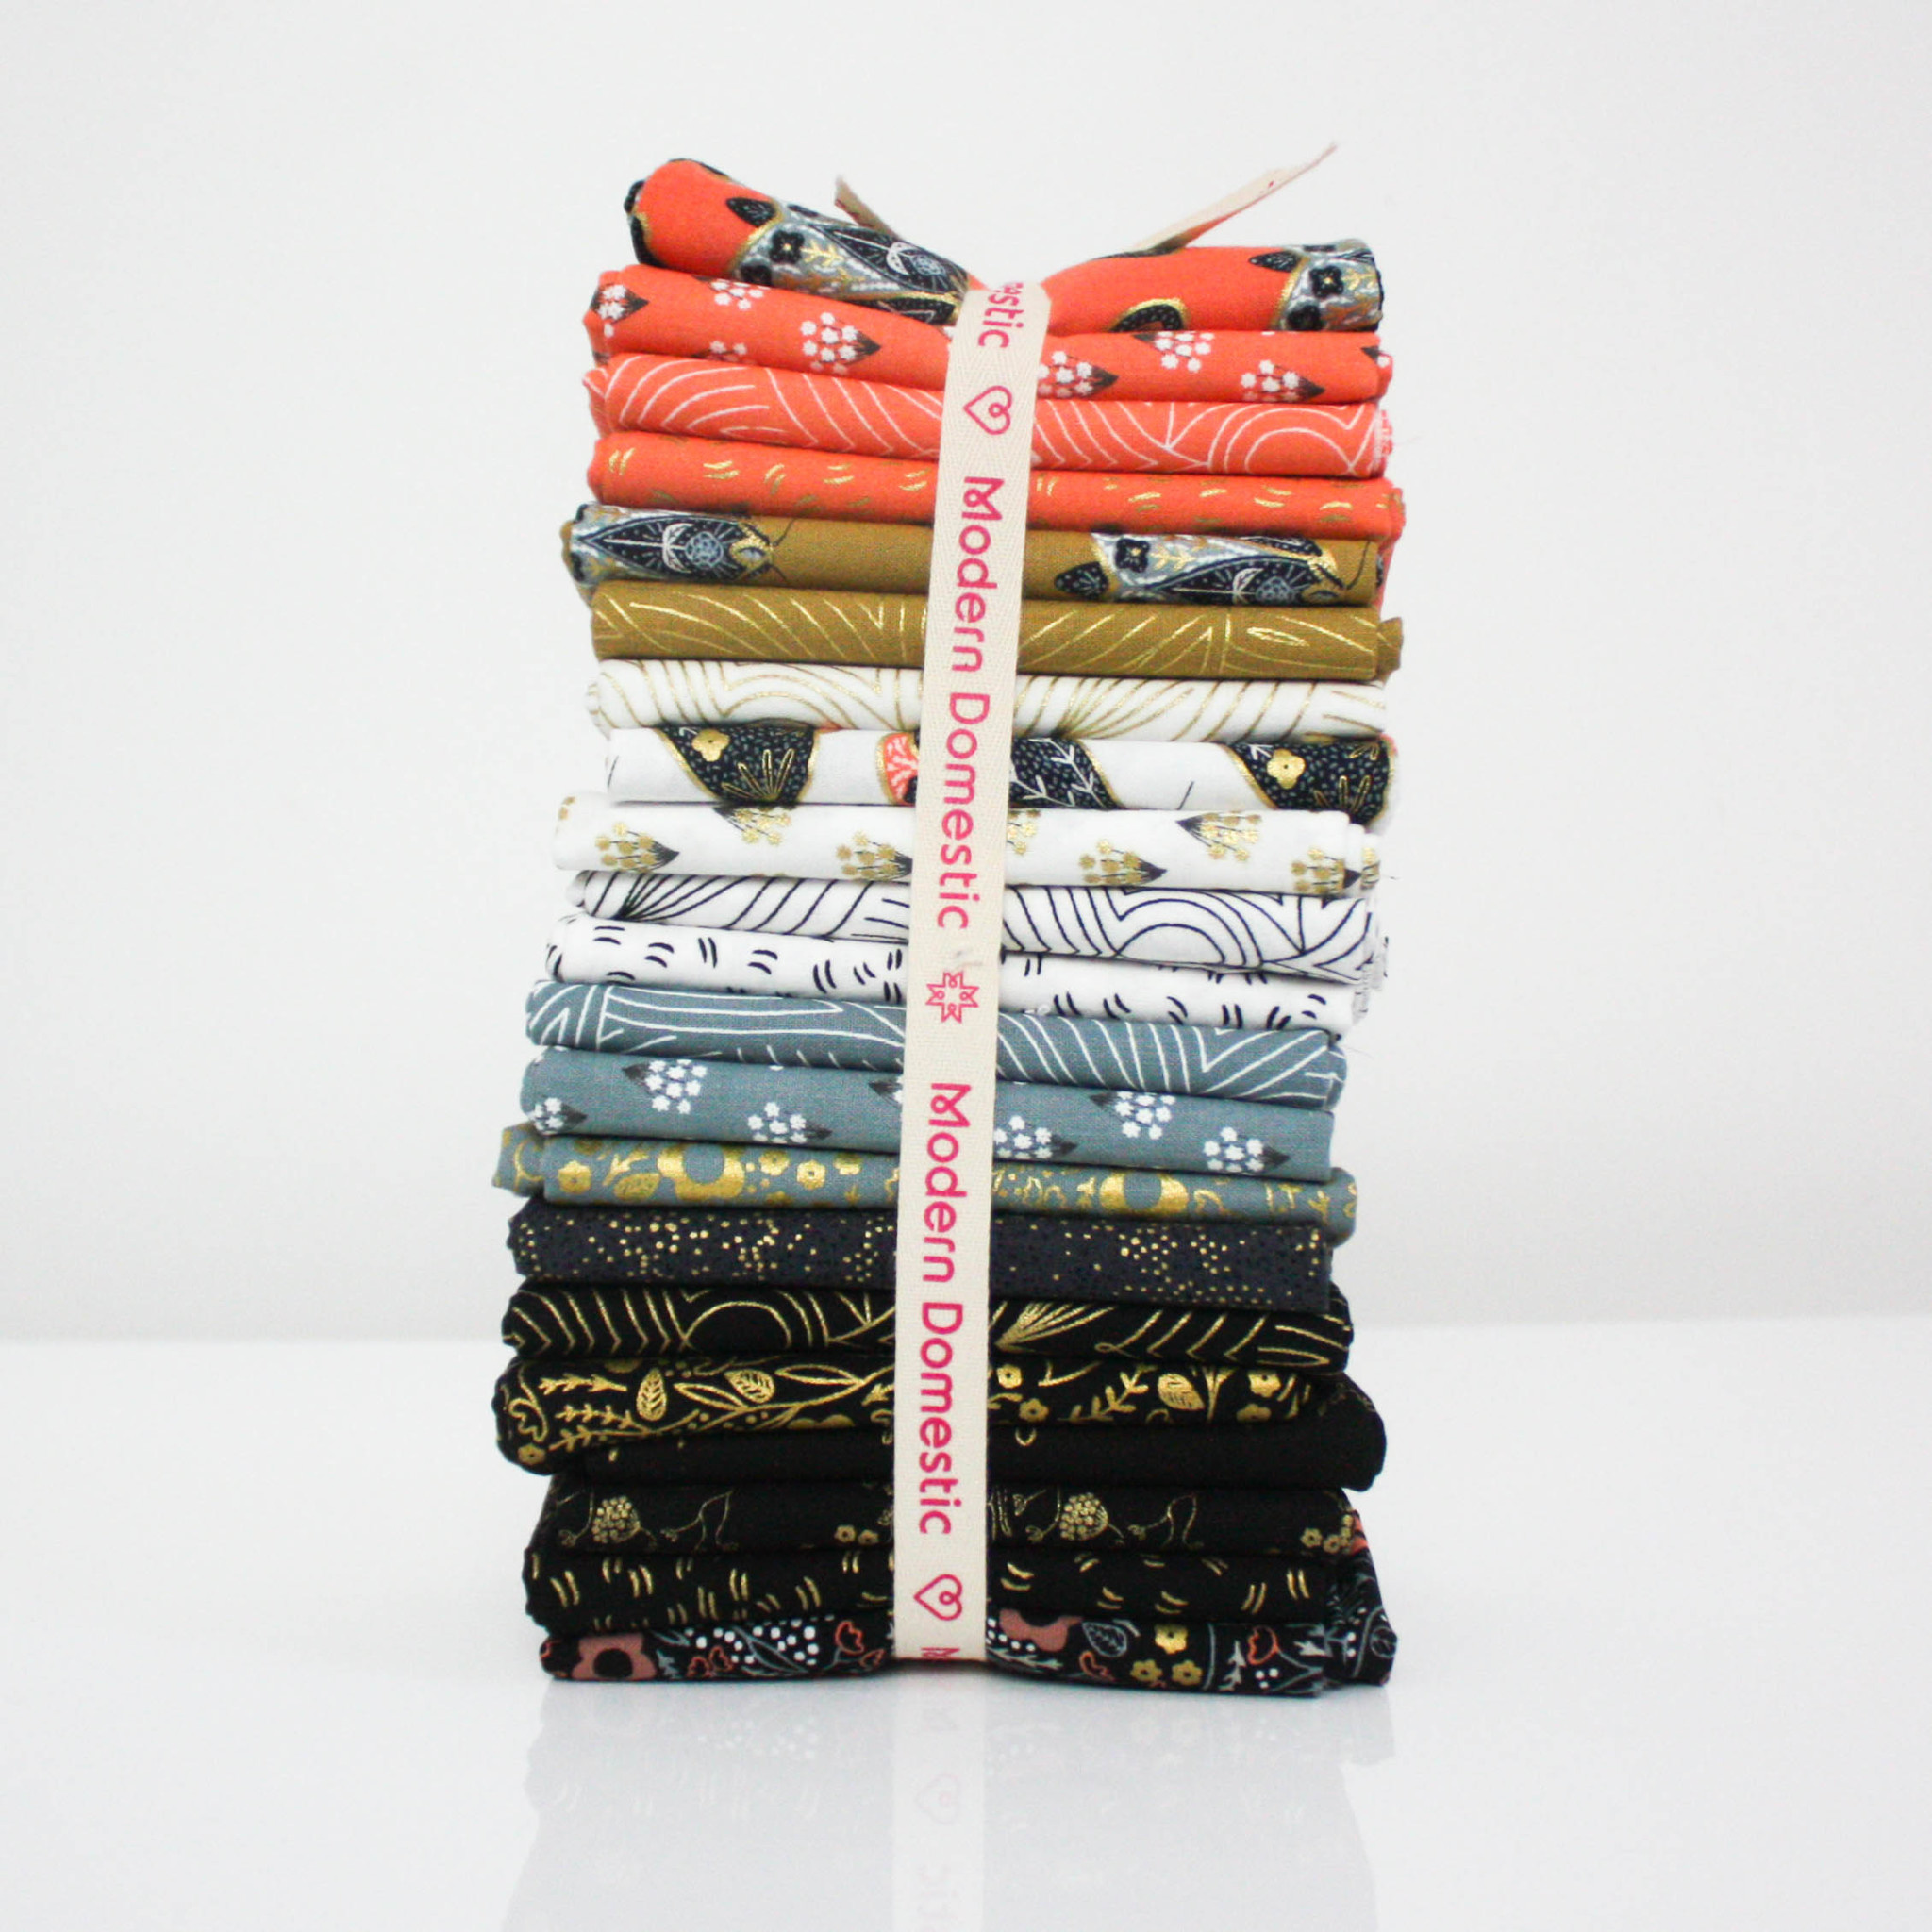 Modern Domestic 21 Piece Fat Quarter Bundle - Dwell in Possibilities by Gingiber